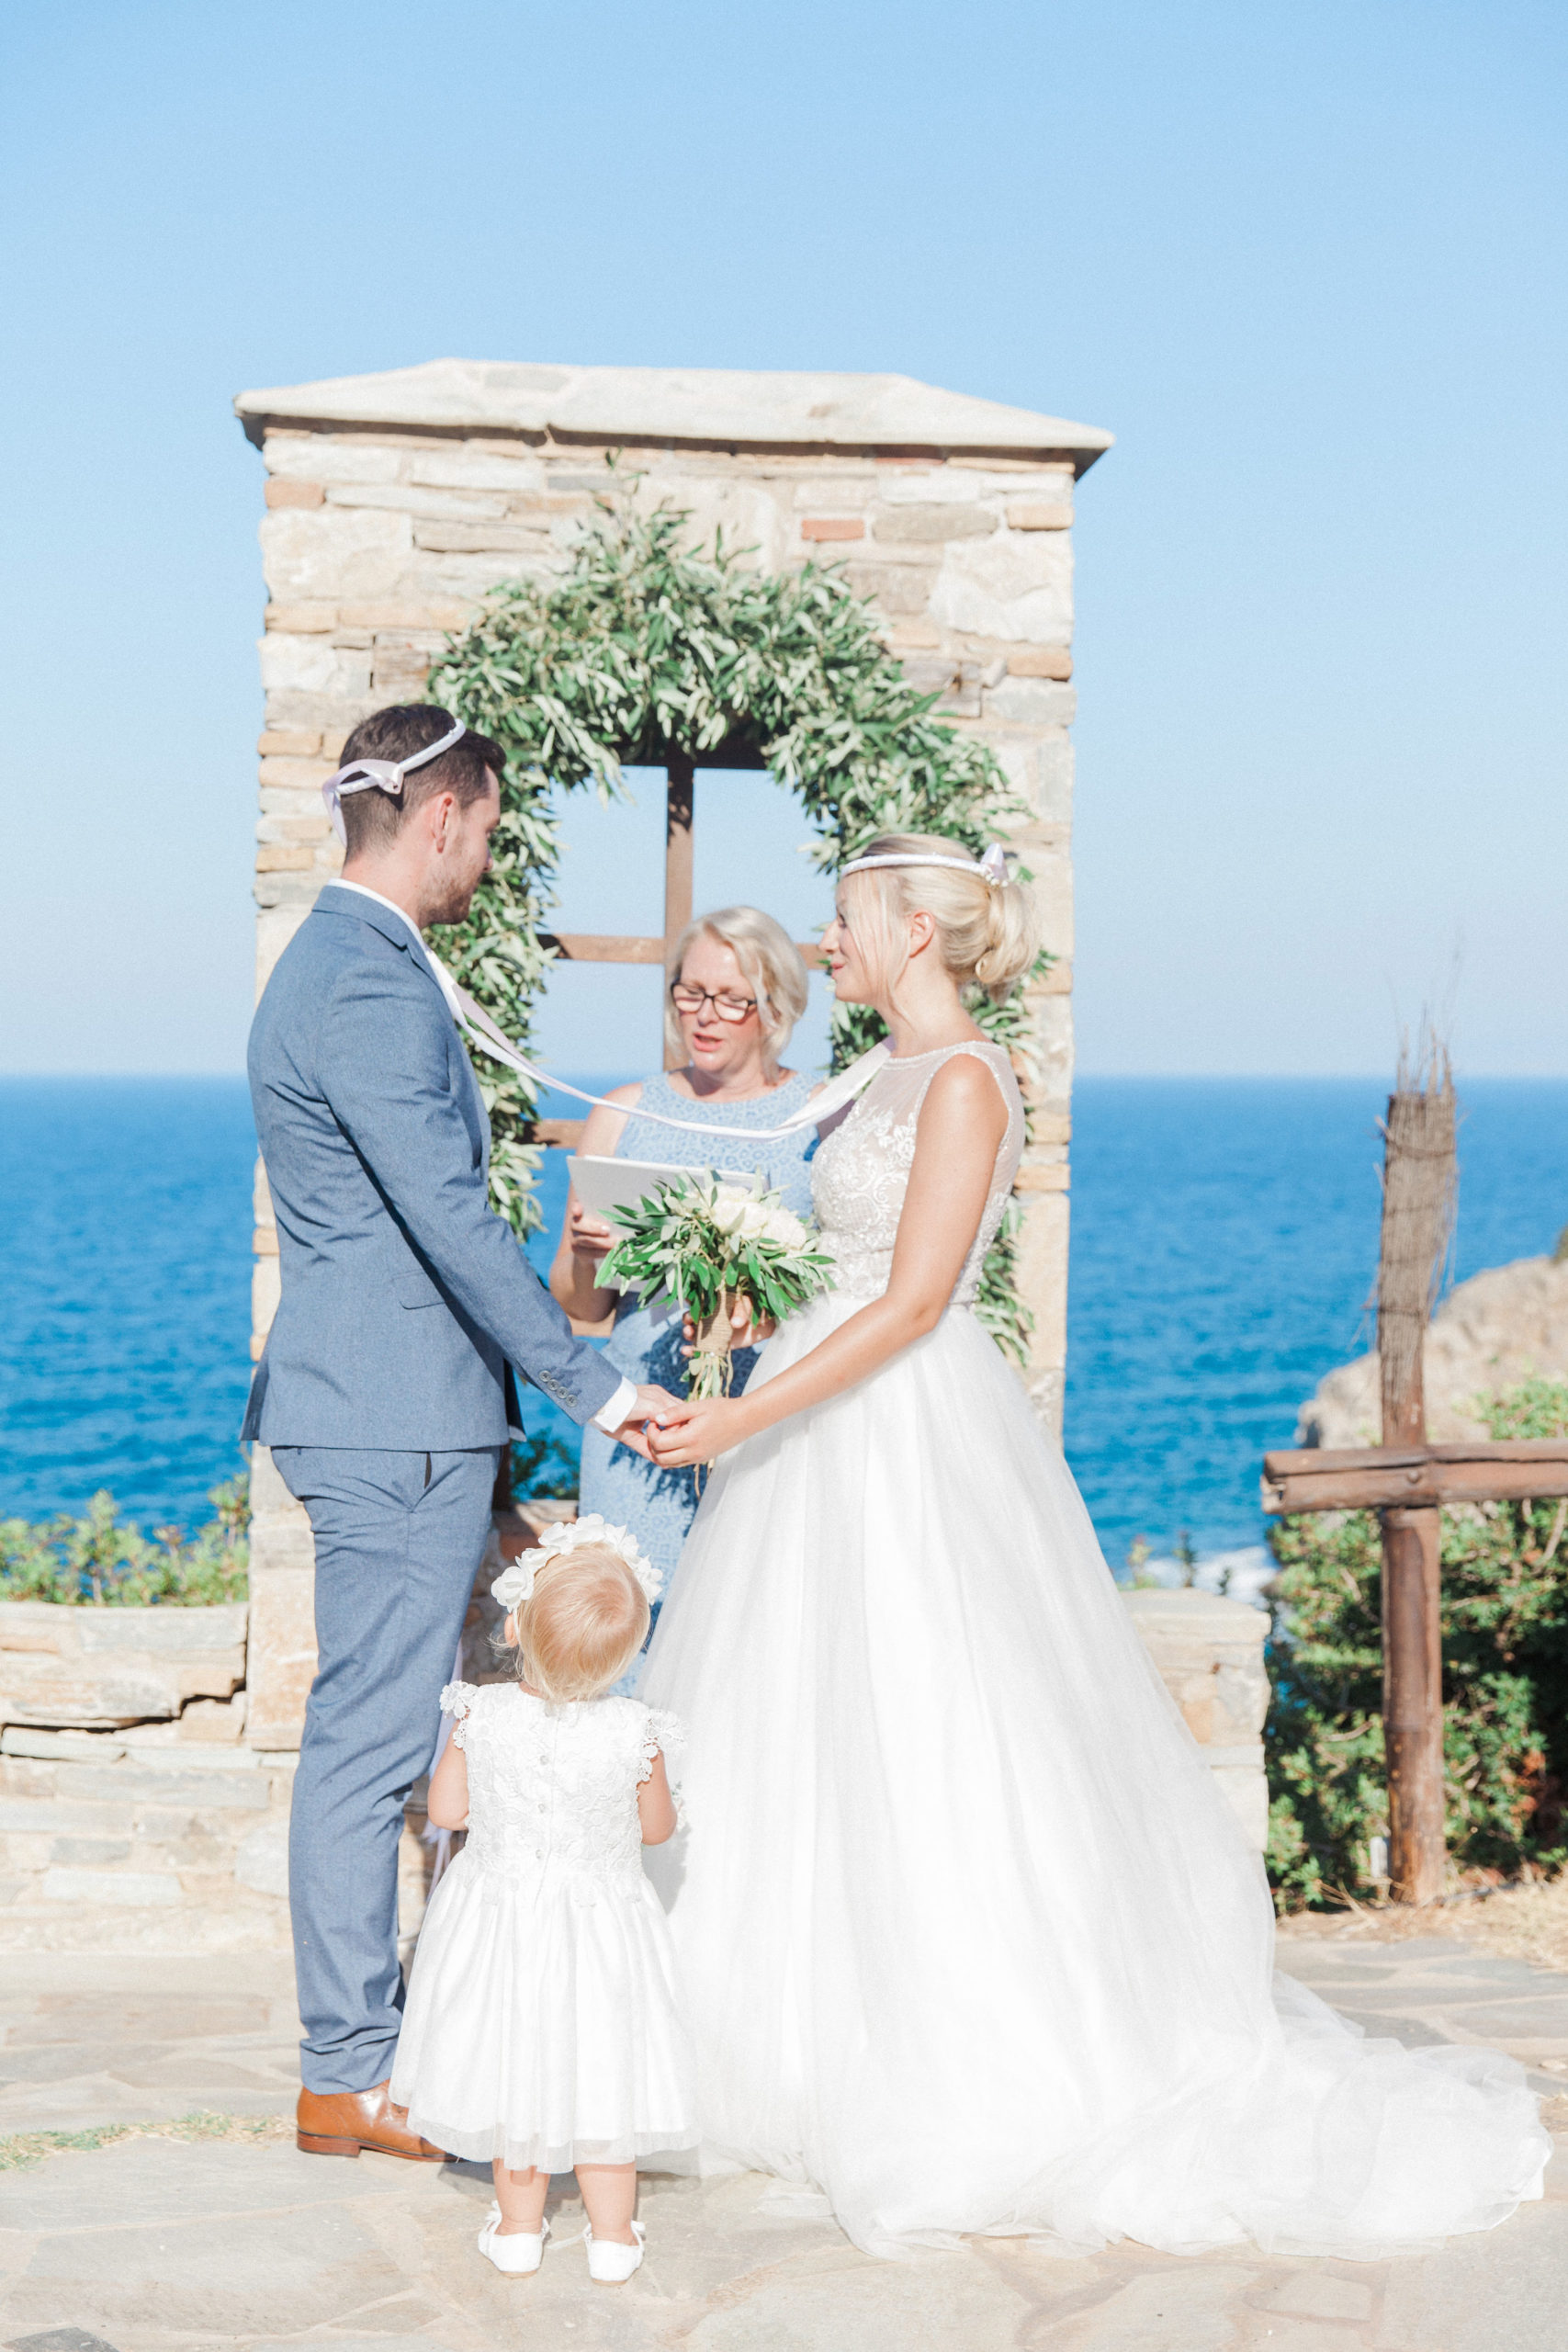 A wedding ceremony with the couple and their wedding celebrant in Greece. The couple are wearing Greek wedding crowns.